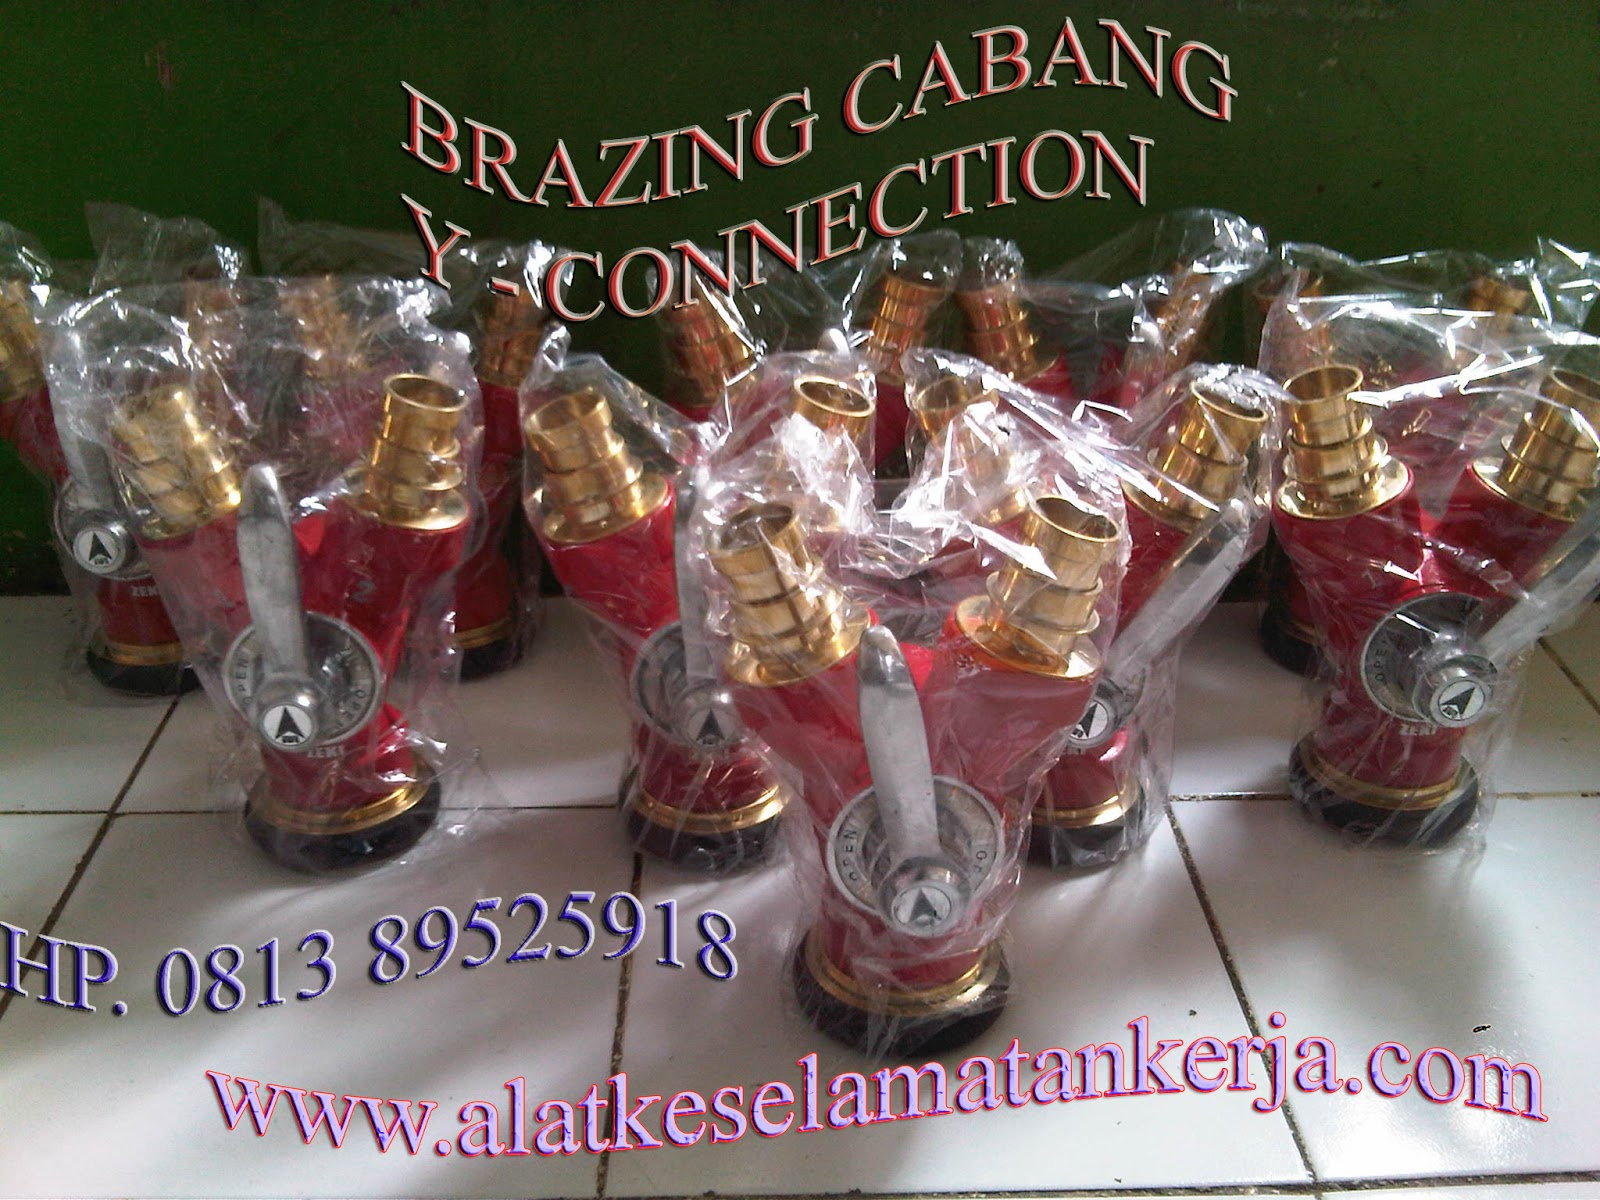 Brazing Cabang Y Connection Perlengkapa Hydrant Equipment